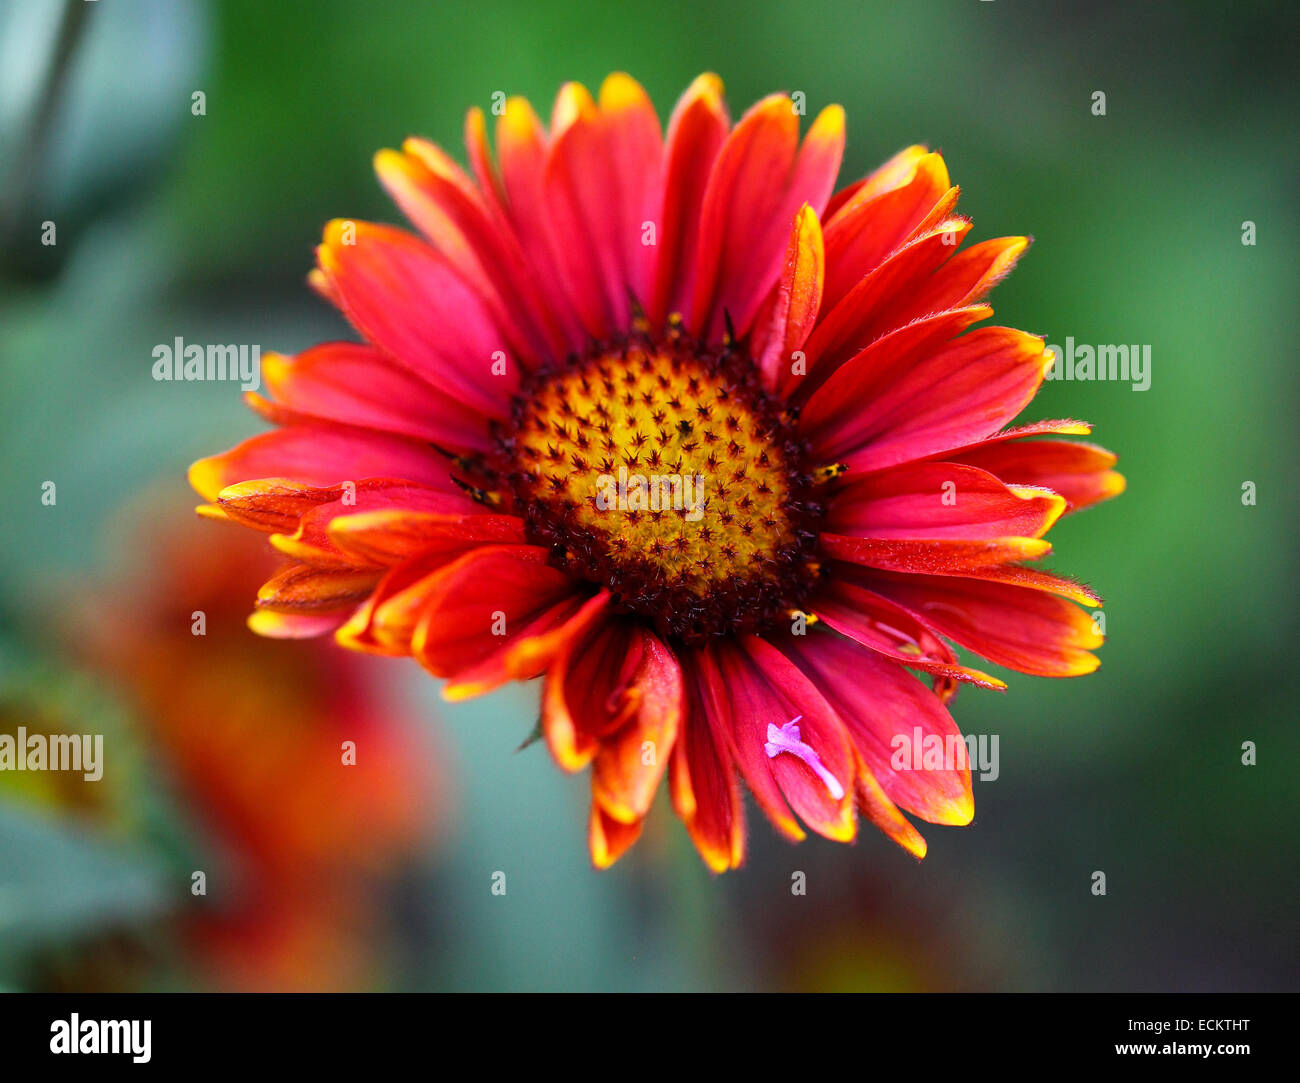 A Gaillardia 'Arizona Red Shades' flower with red and yellow tipped petals - Stock Image